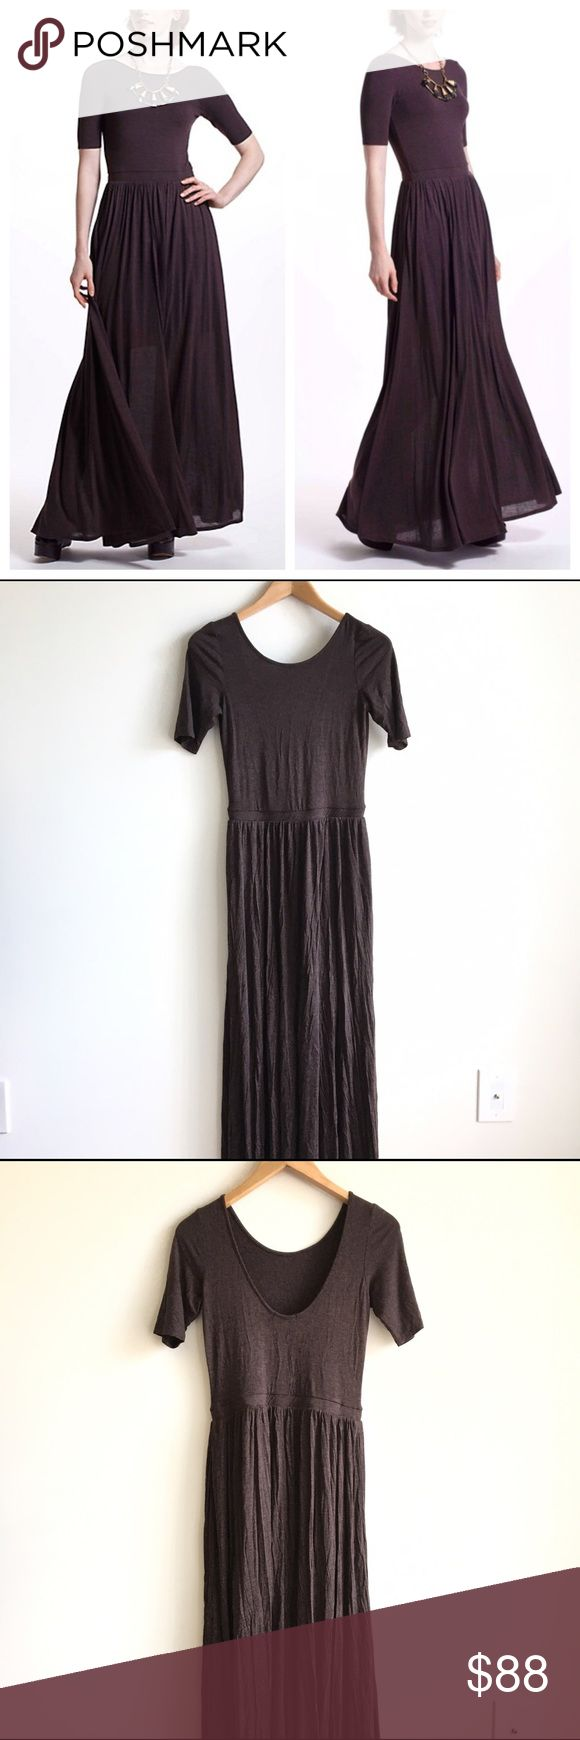 NWT Bordeaux Anthropologie Brown Maxi Dress Gorgeous short sleeved, brown scoop back maxi dress. 94% rayon, 6% spandex. Long, flowy bottom. Perfect for a summer nights out. Mini-dress liner. Cinched at waist. Brand new, with tags. Anthropologie Dresses Maxi